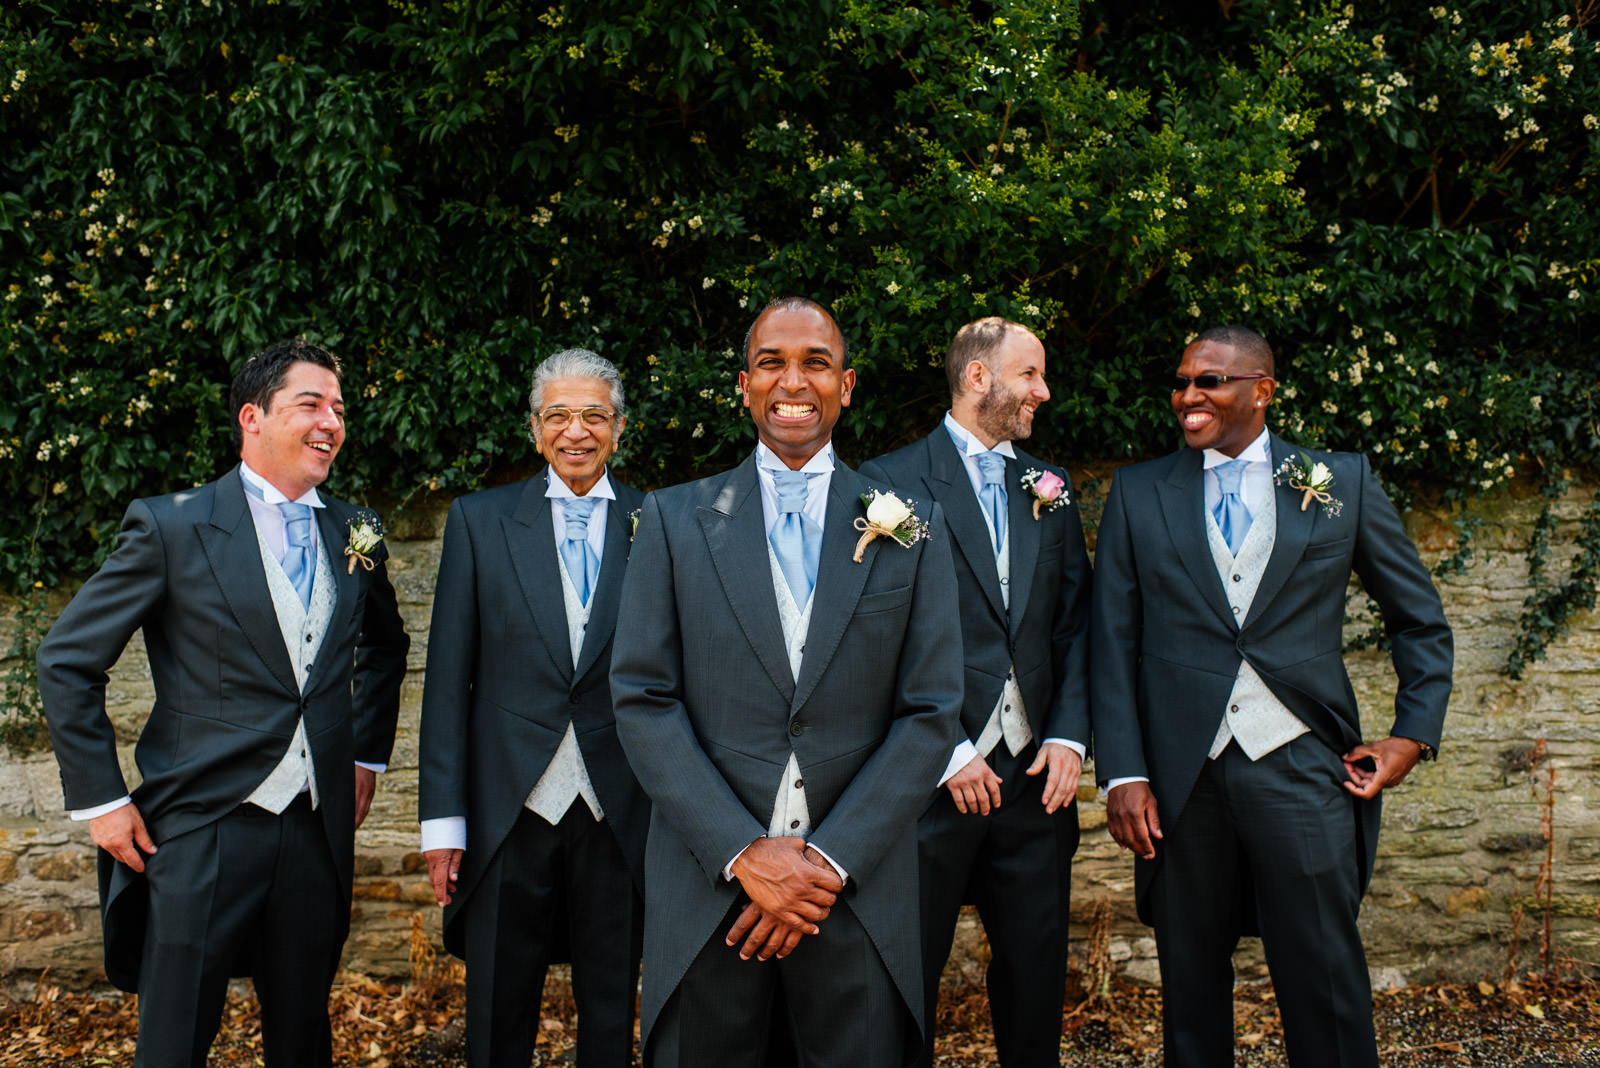 Happy Groomsmen Photo